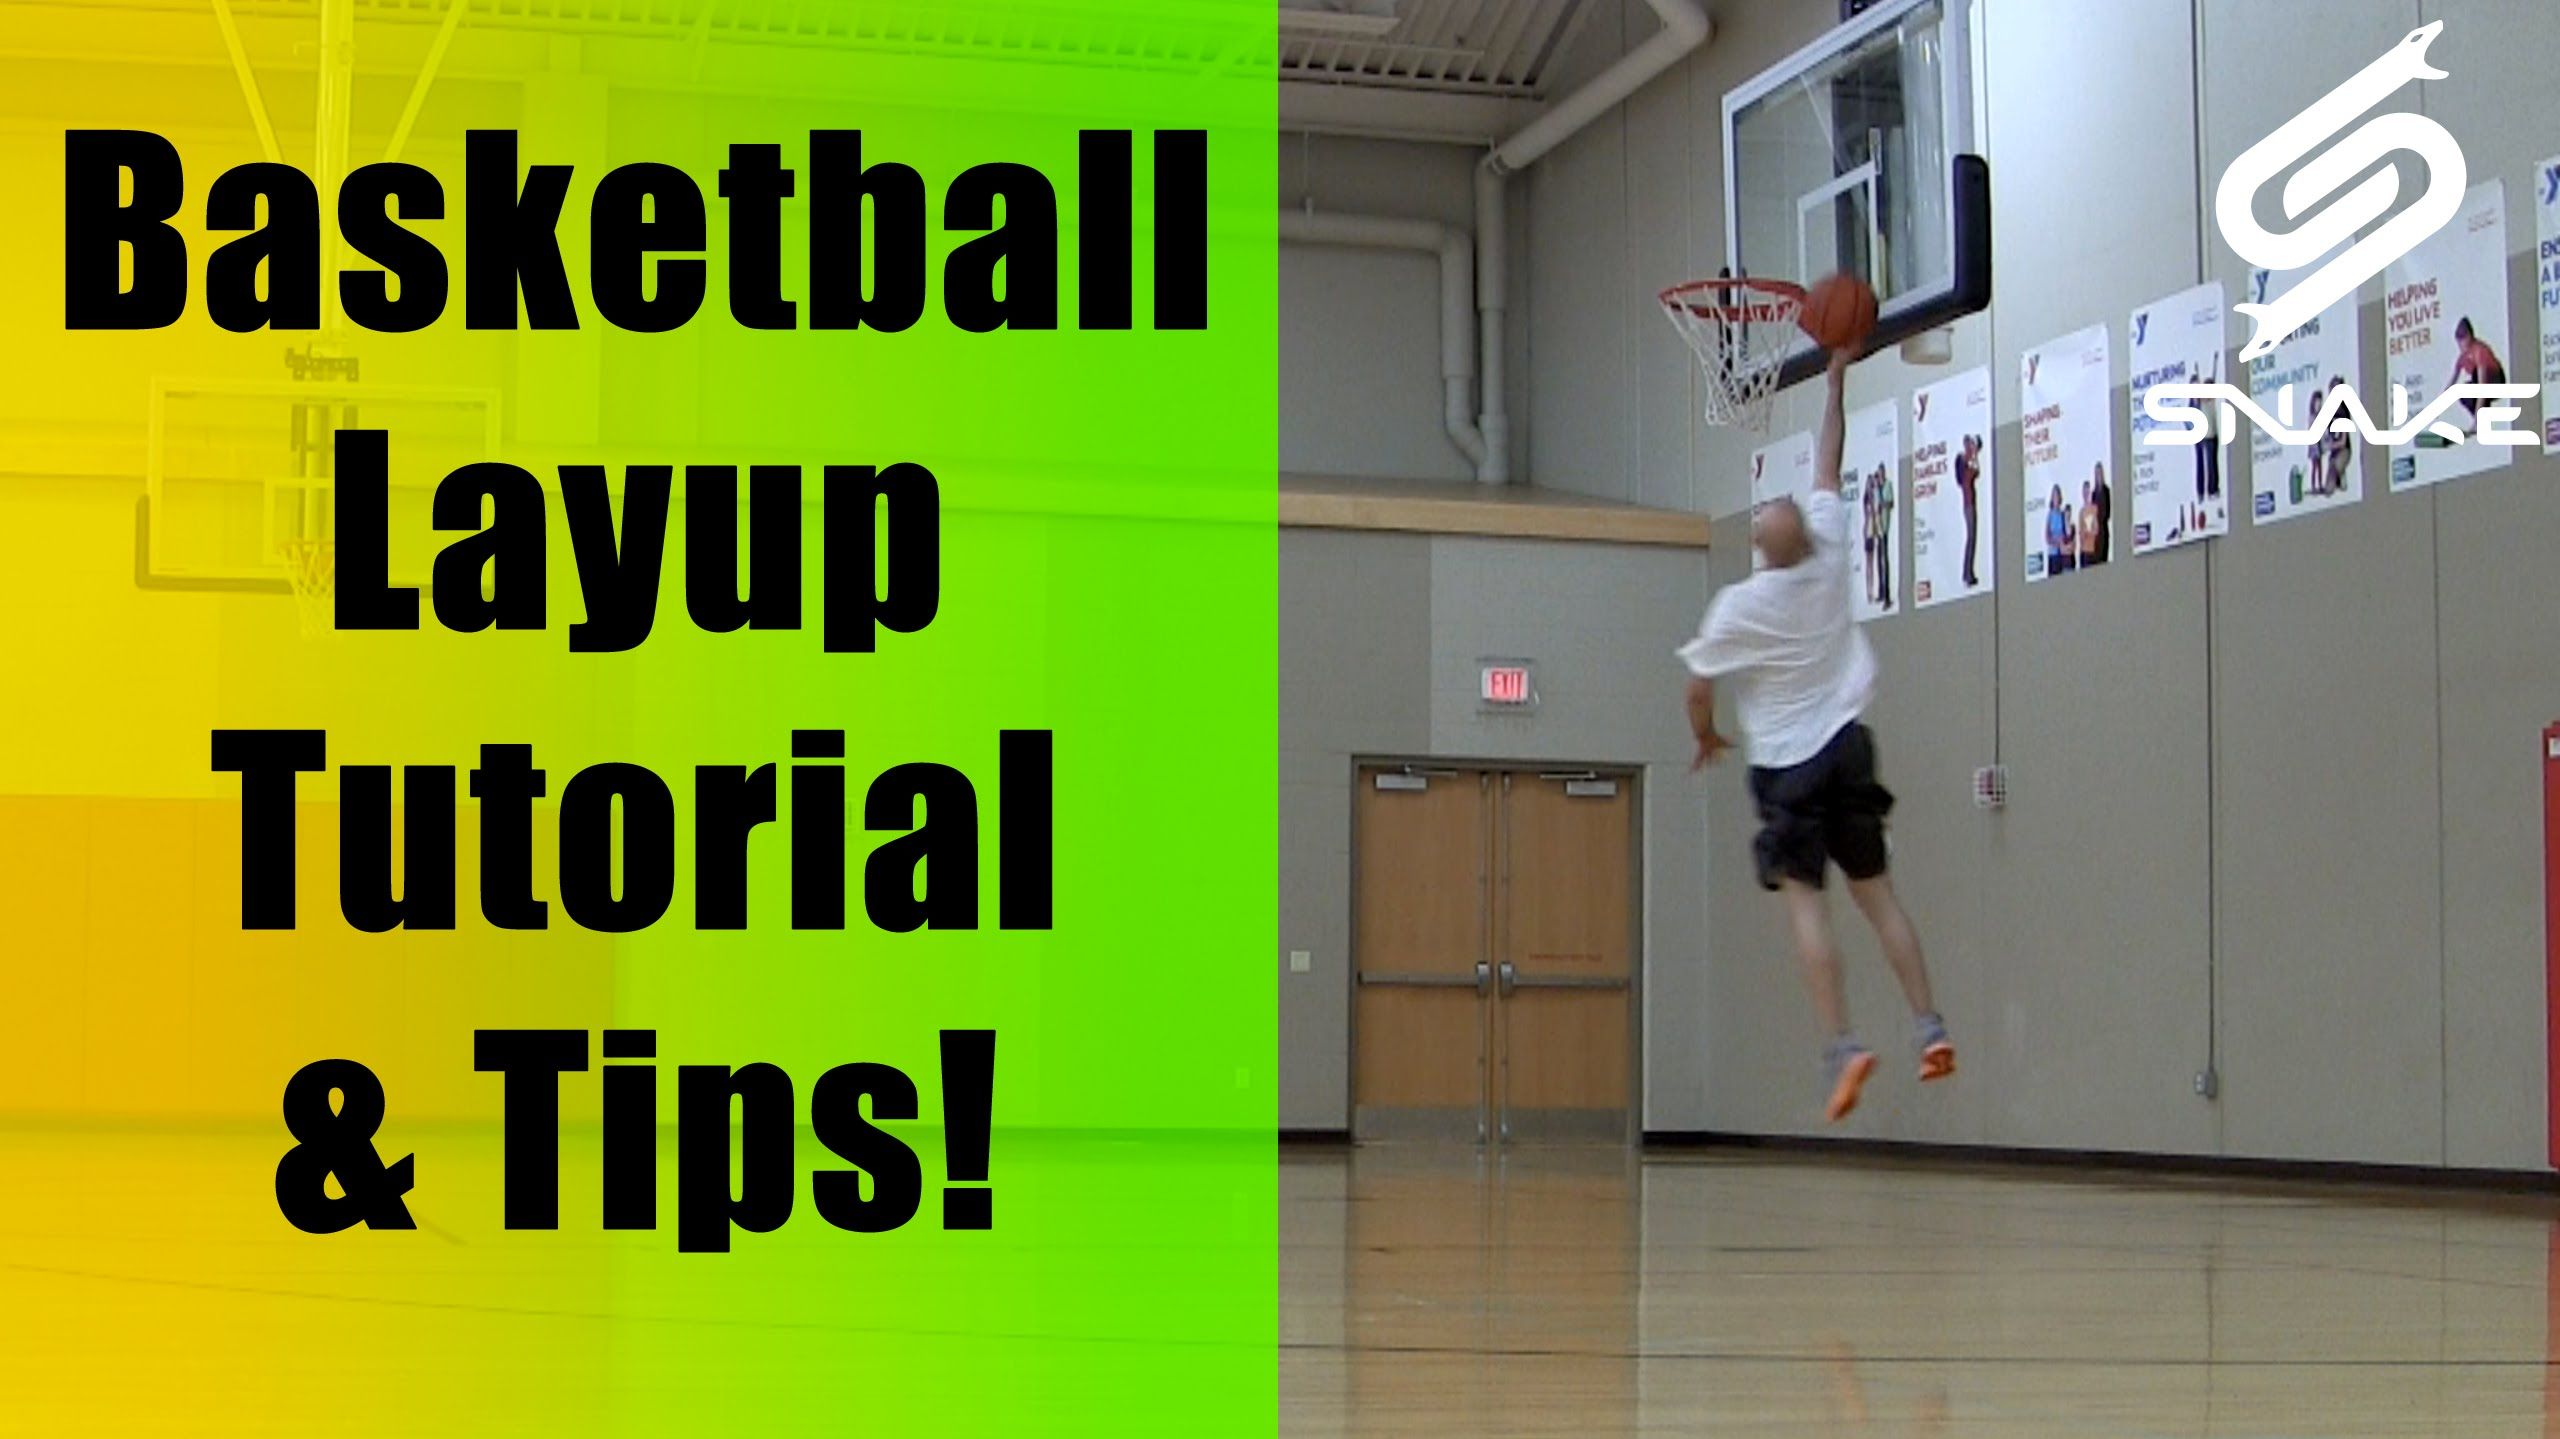 Basketball layup tutorial how to footwork tips and